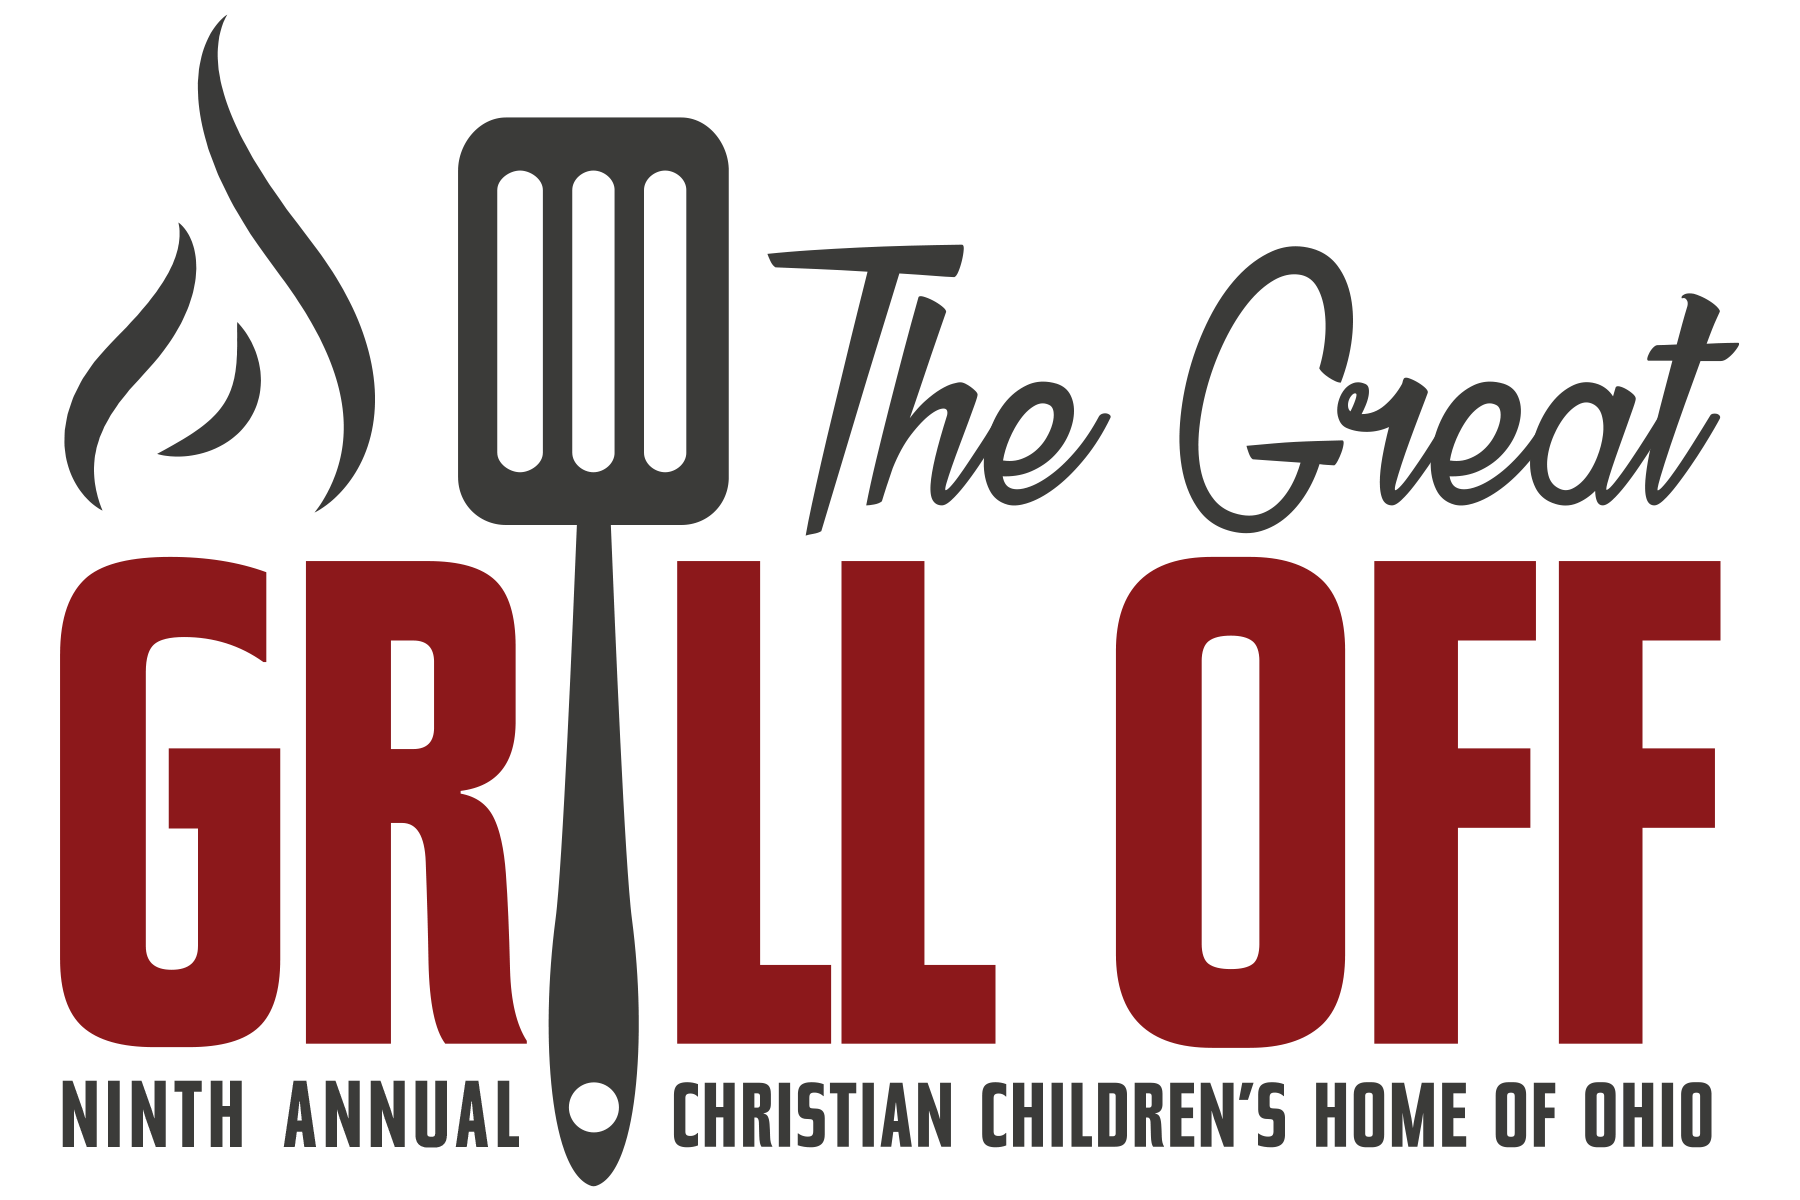 The Great Grill Off